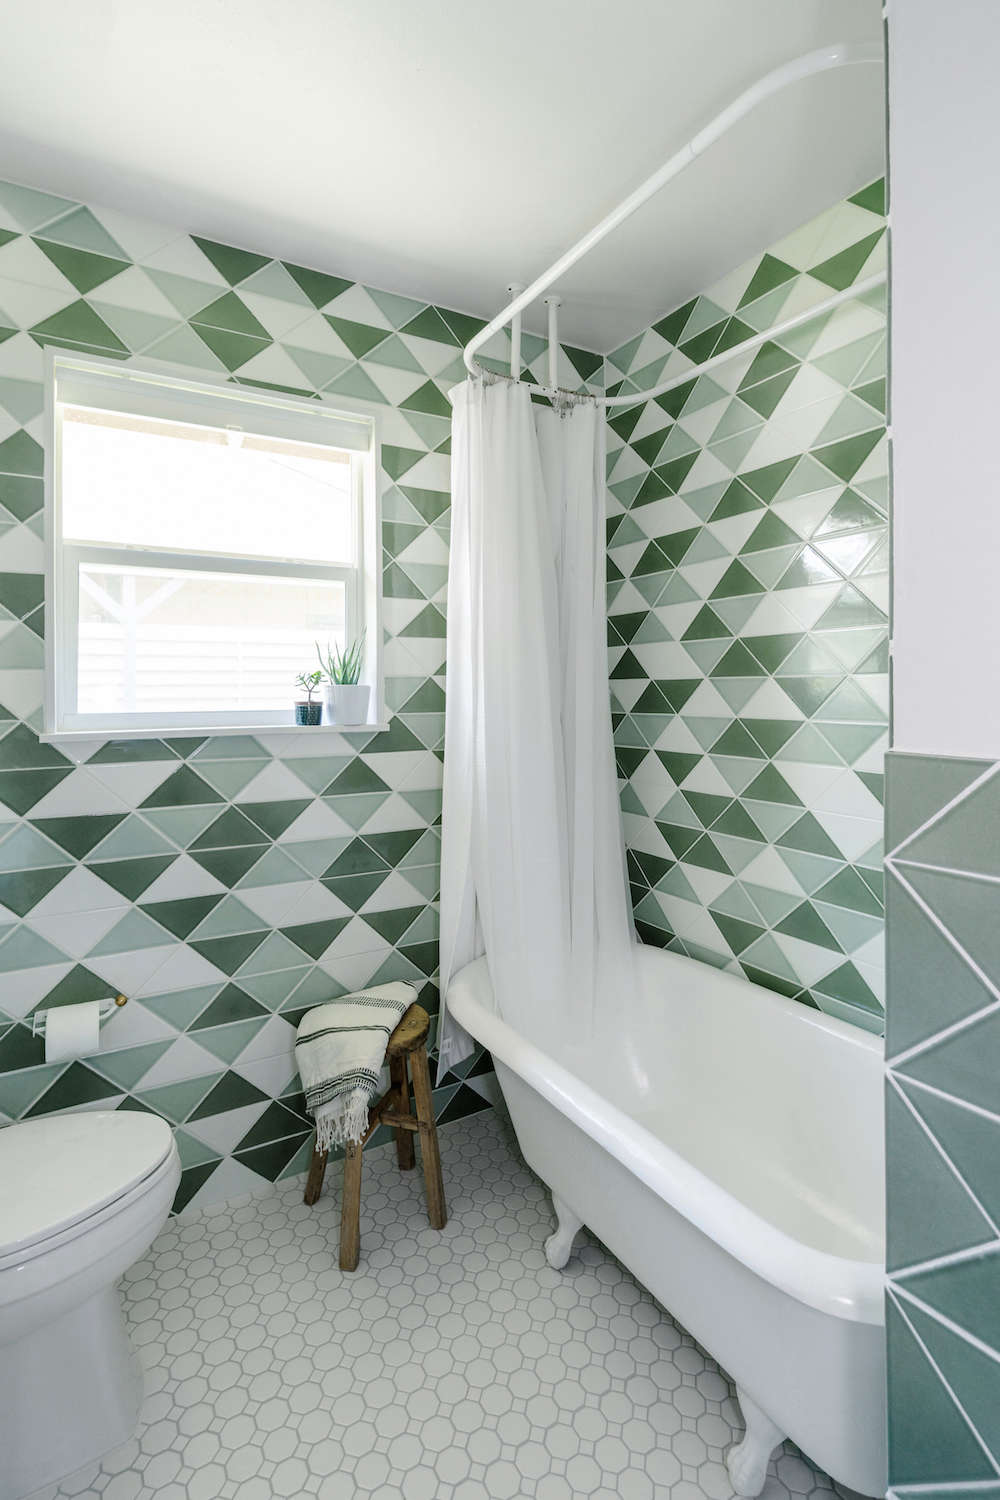 Before & After: Green Tiled Bathroom Conversion - Remodelista